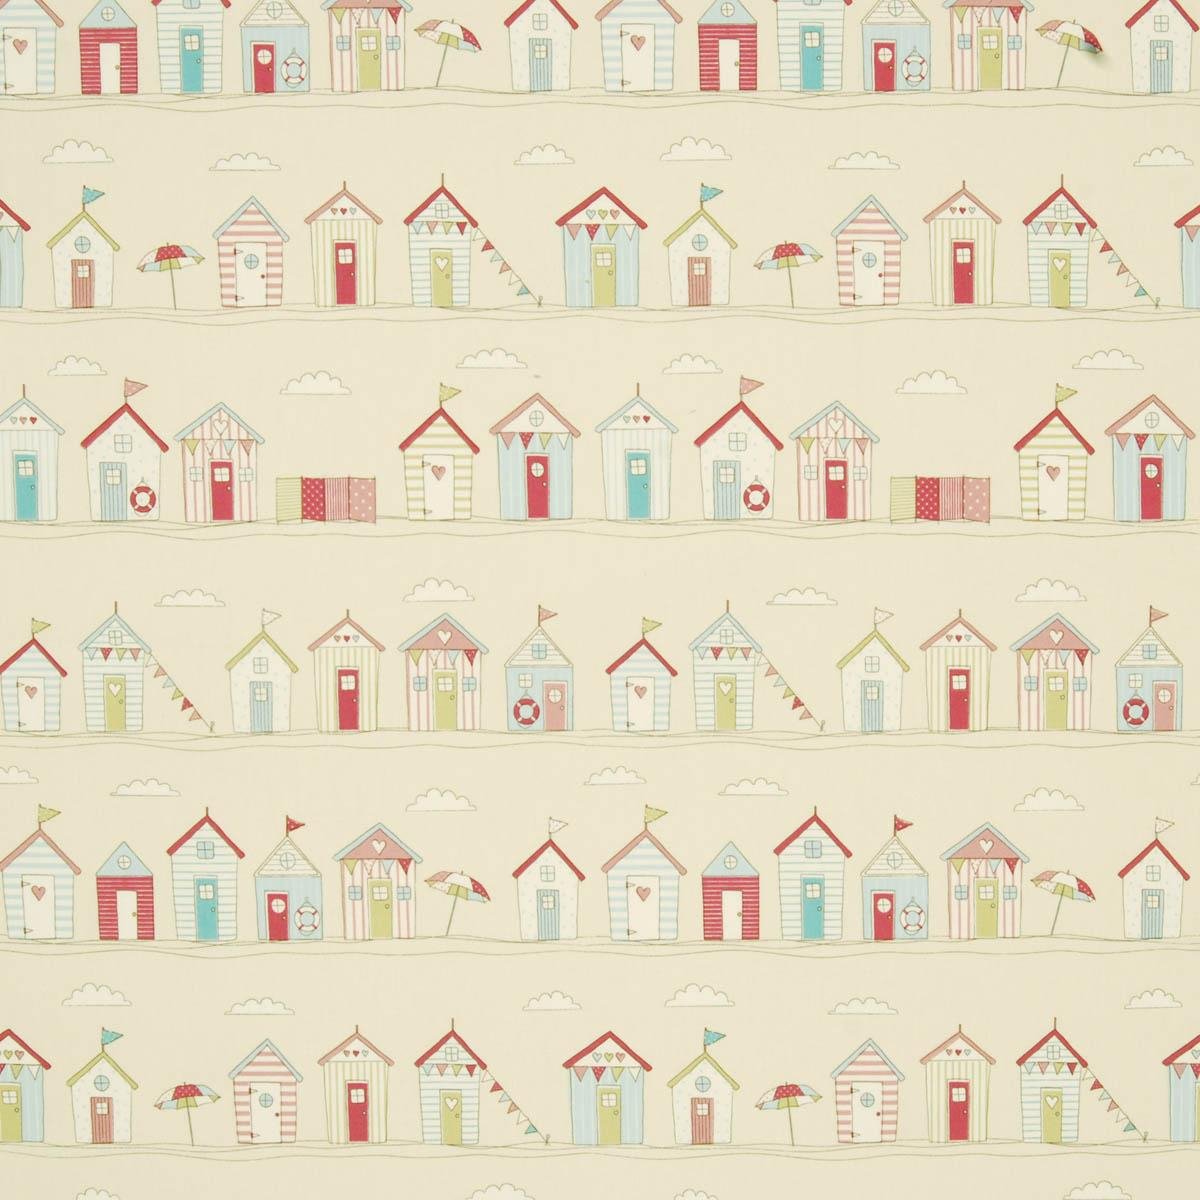 Pink shower curtains fabric - Beach Huts Curtain Fabric In Pink Prints Amp Checks Uk Delivery